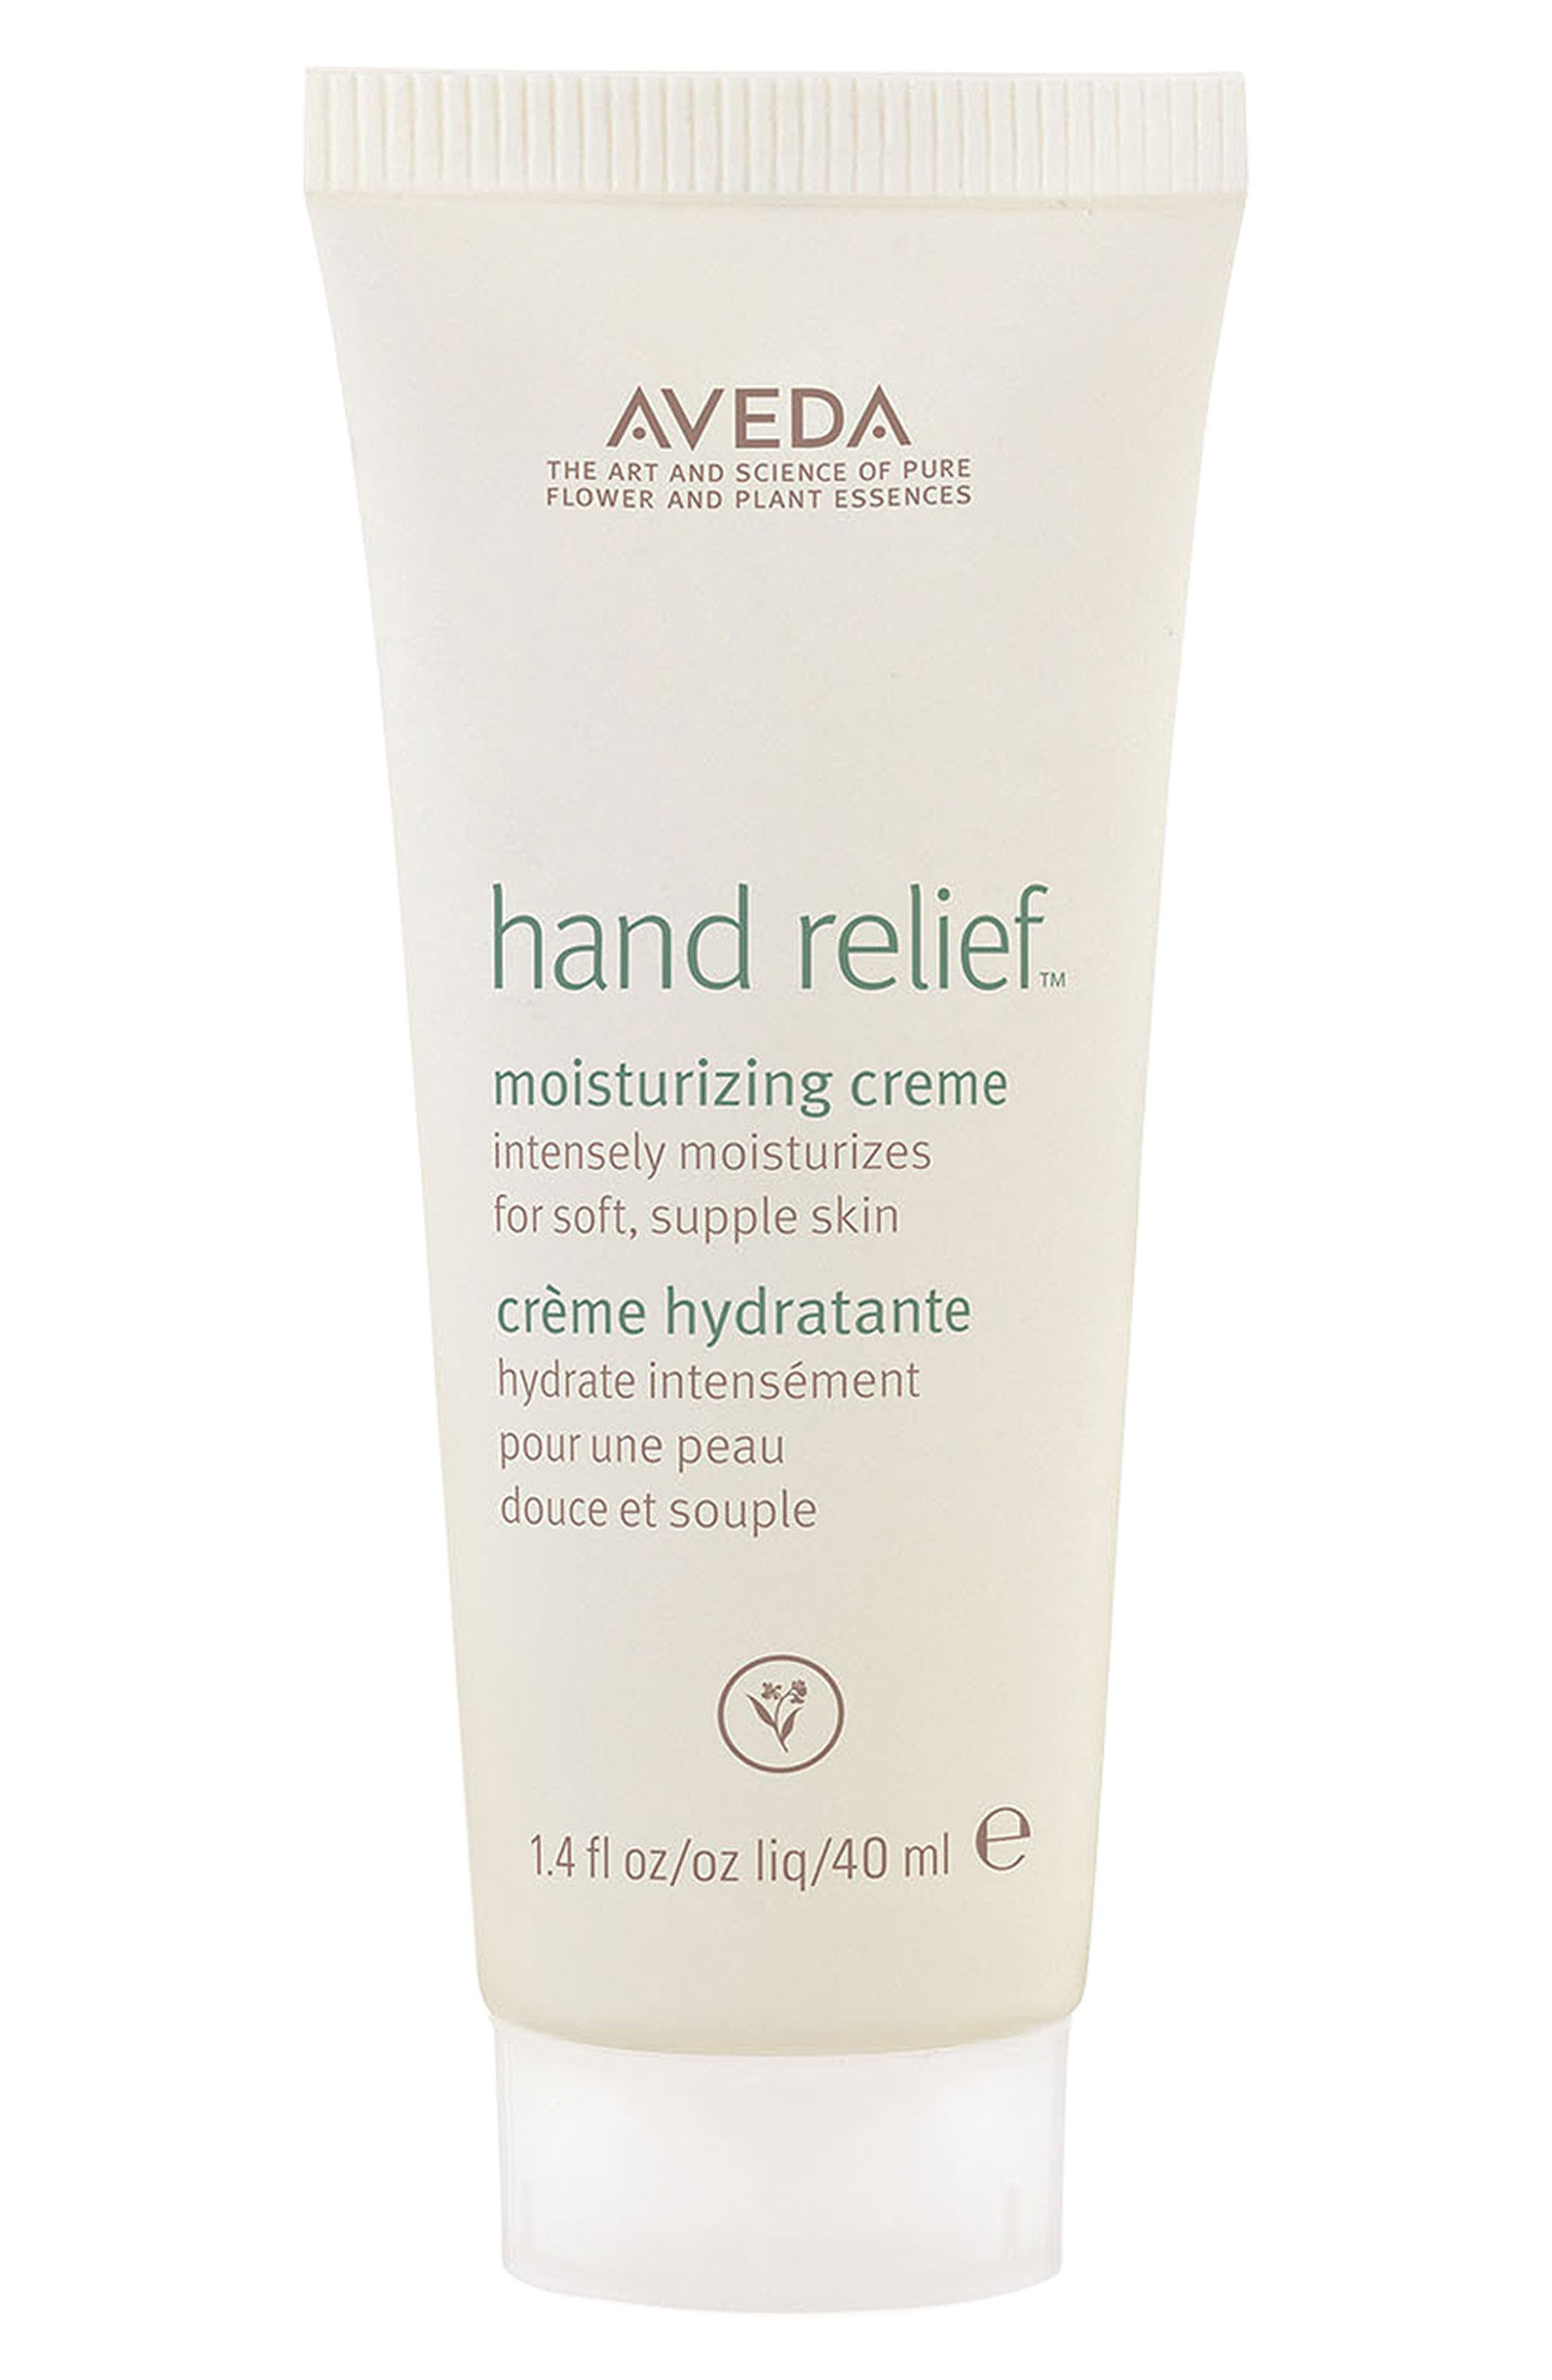 Alternate Image 1 Selected - Aveda 'hand relief™' Hand Cream